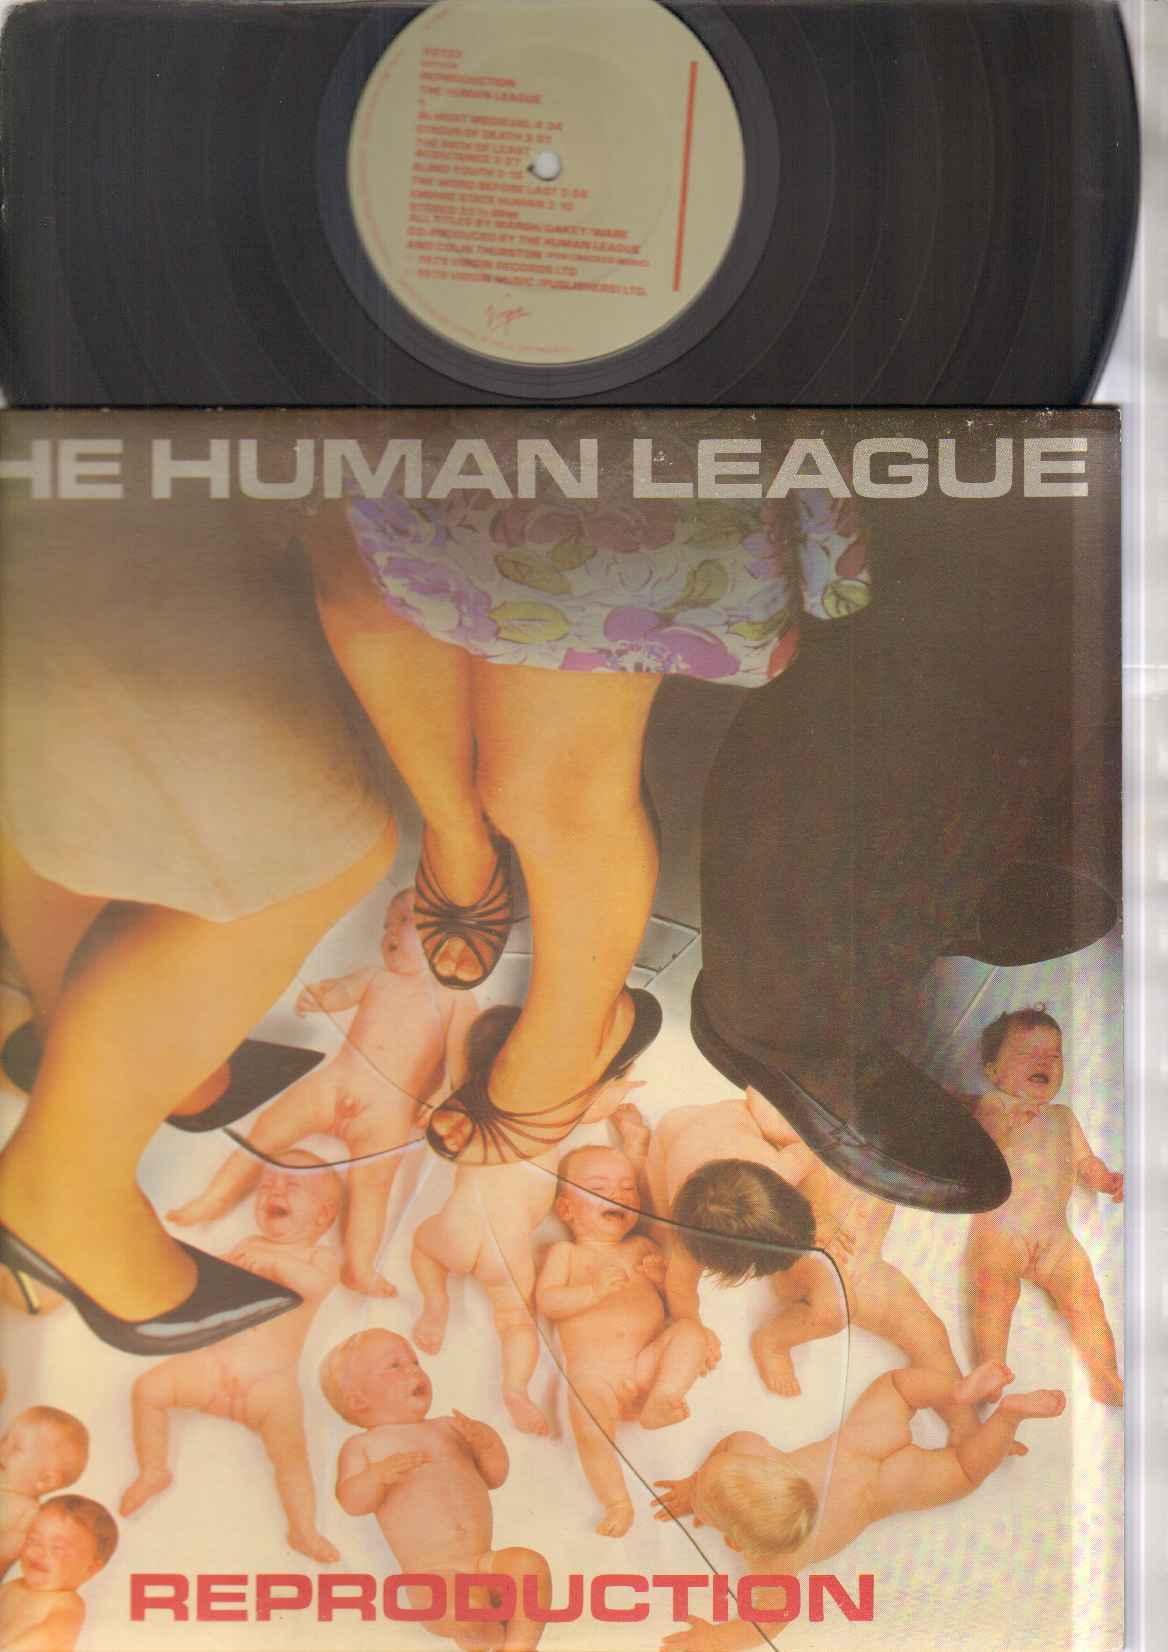 HUMAN LEAGUE - Reproduction LP